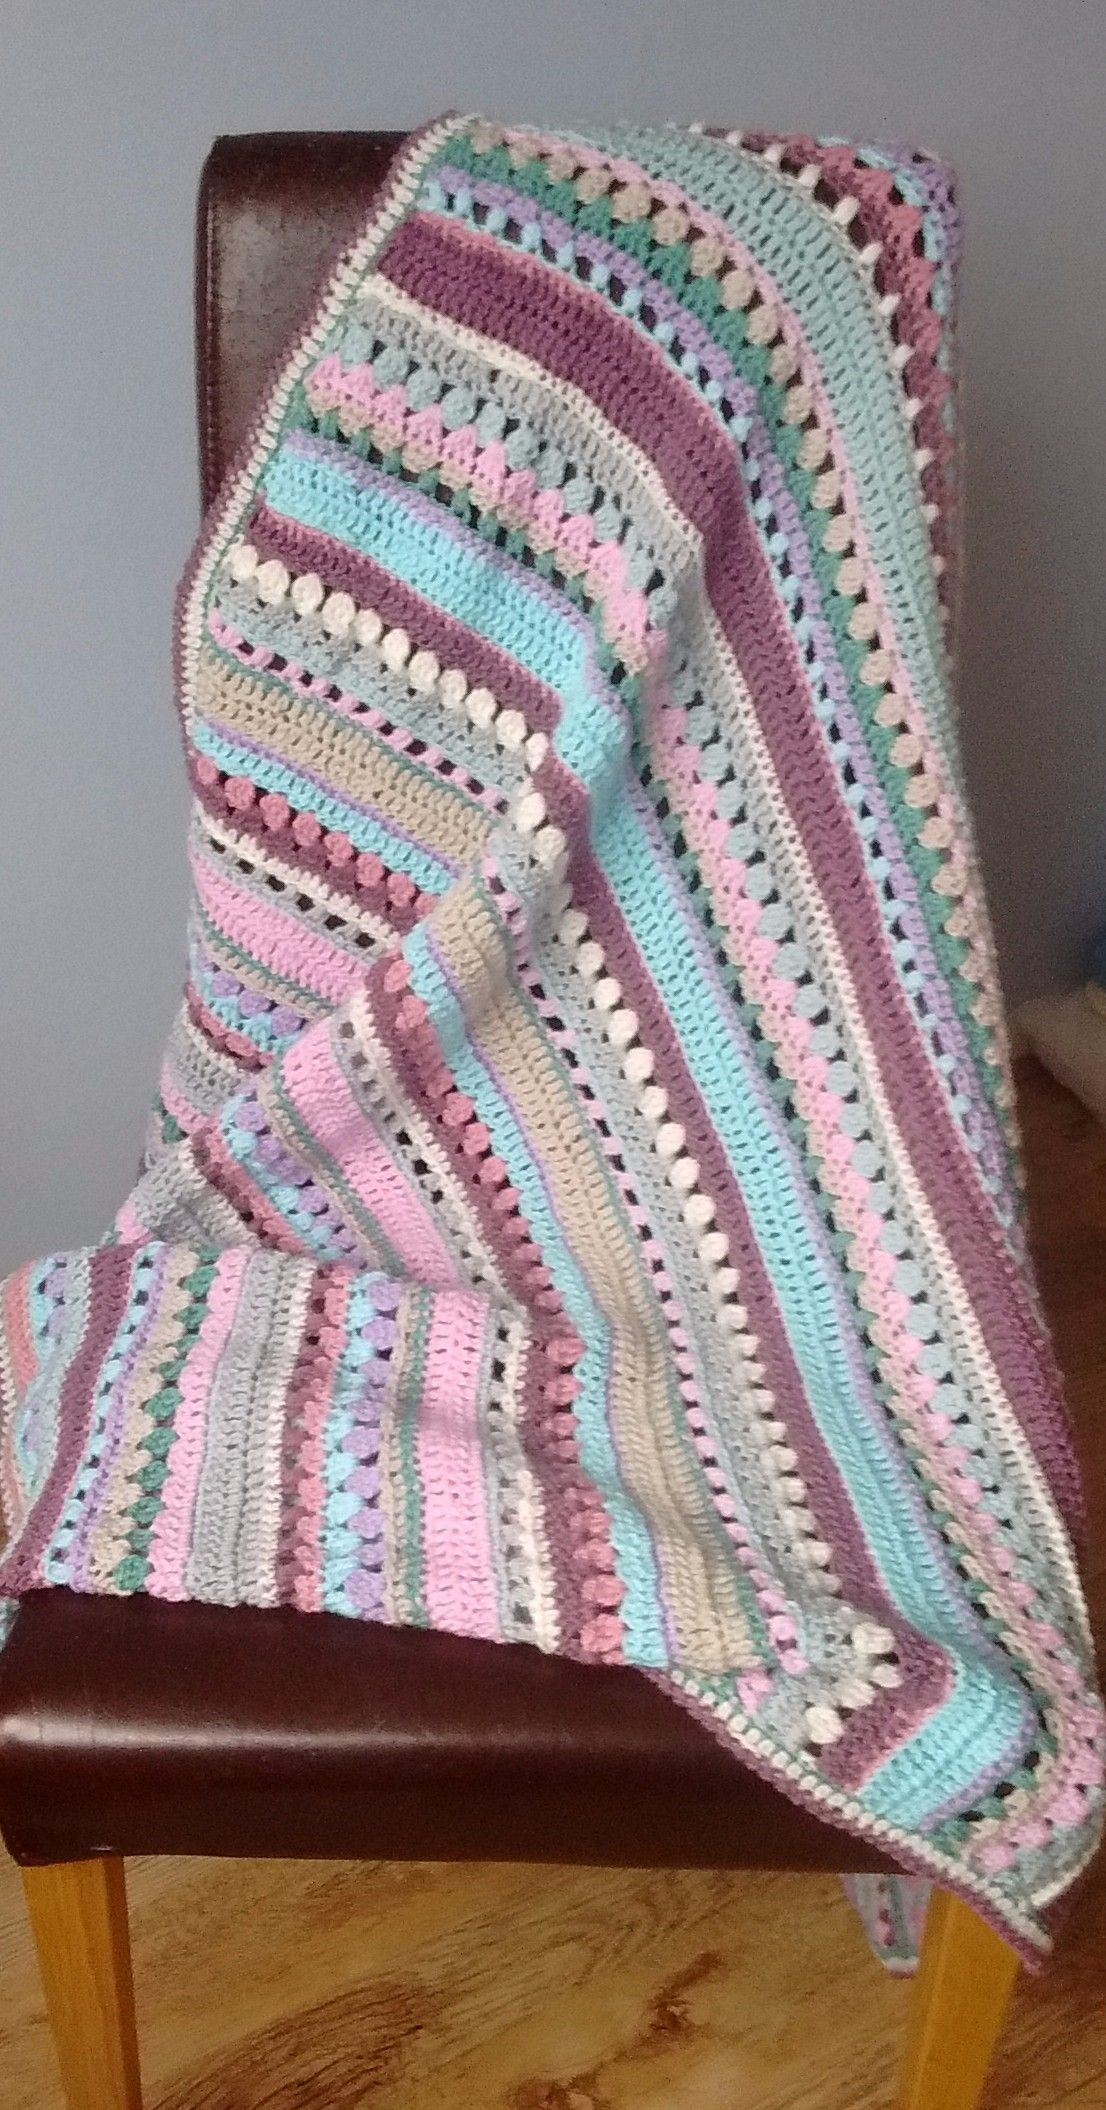 Mixed stitch crochet blanket free pattern crochet patterns mixed stitch crochet blanket free pattern bankloansurffo Image collections